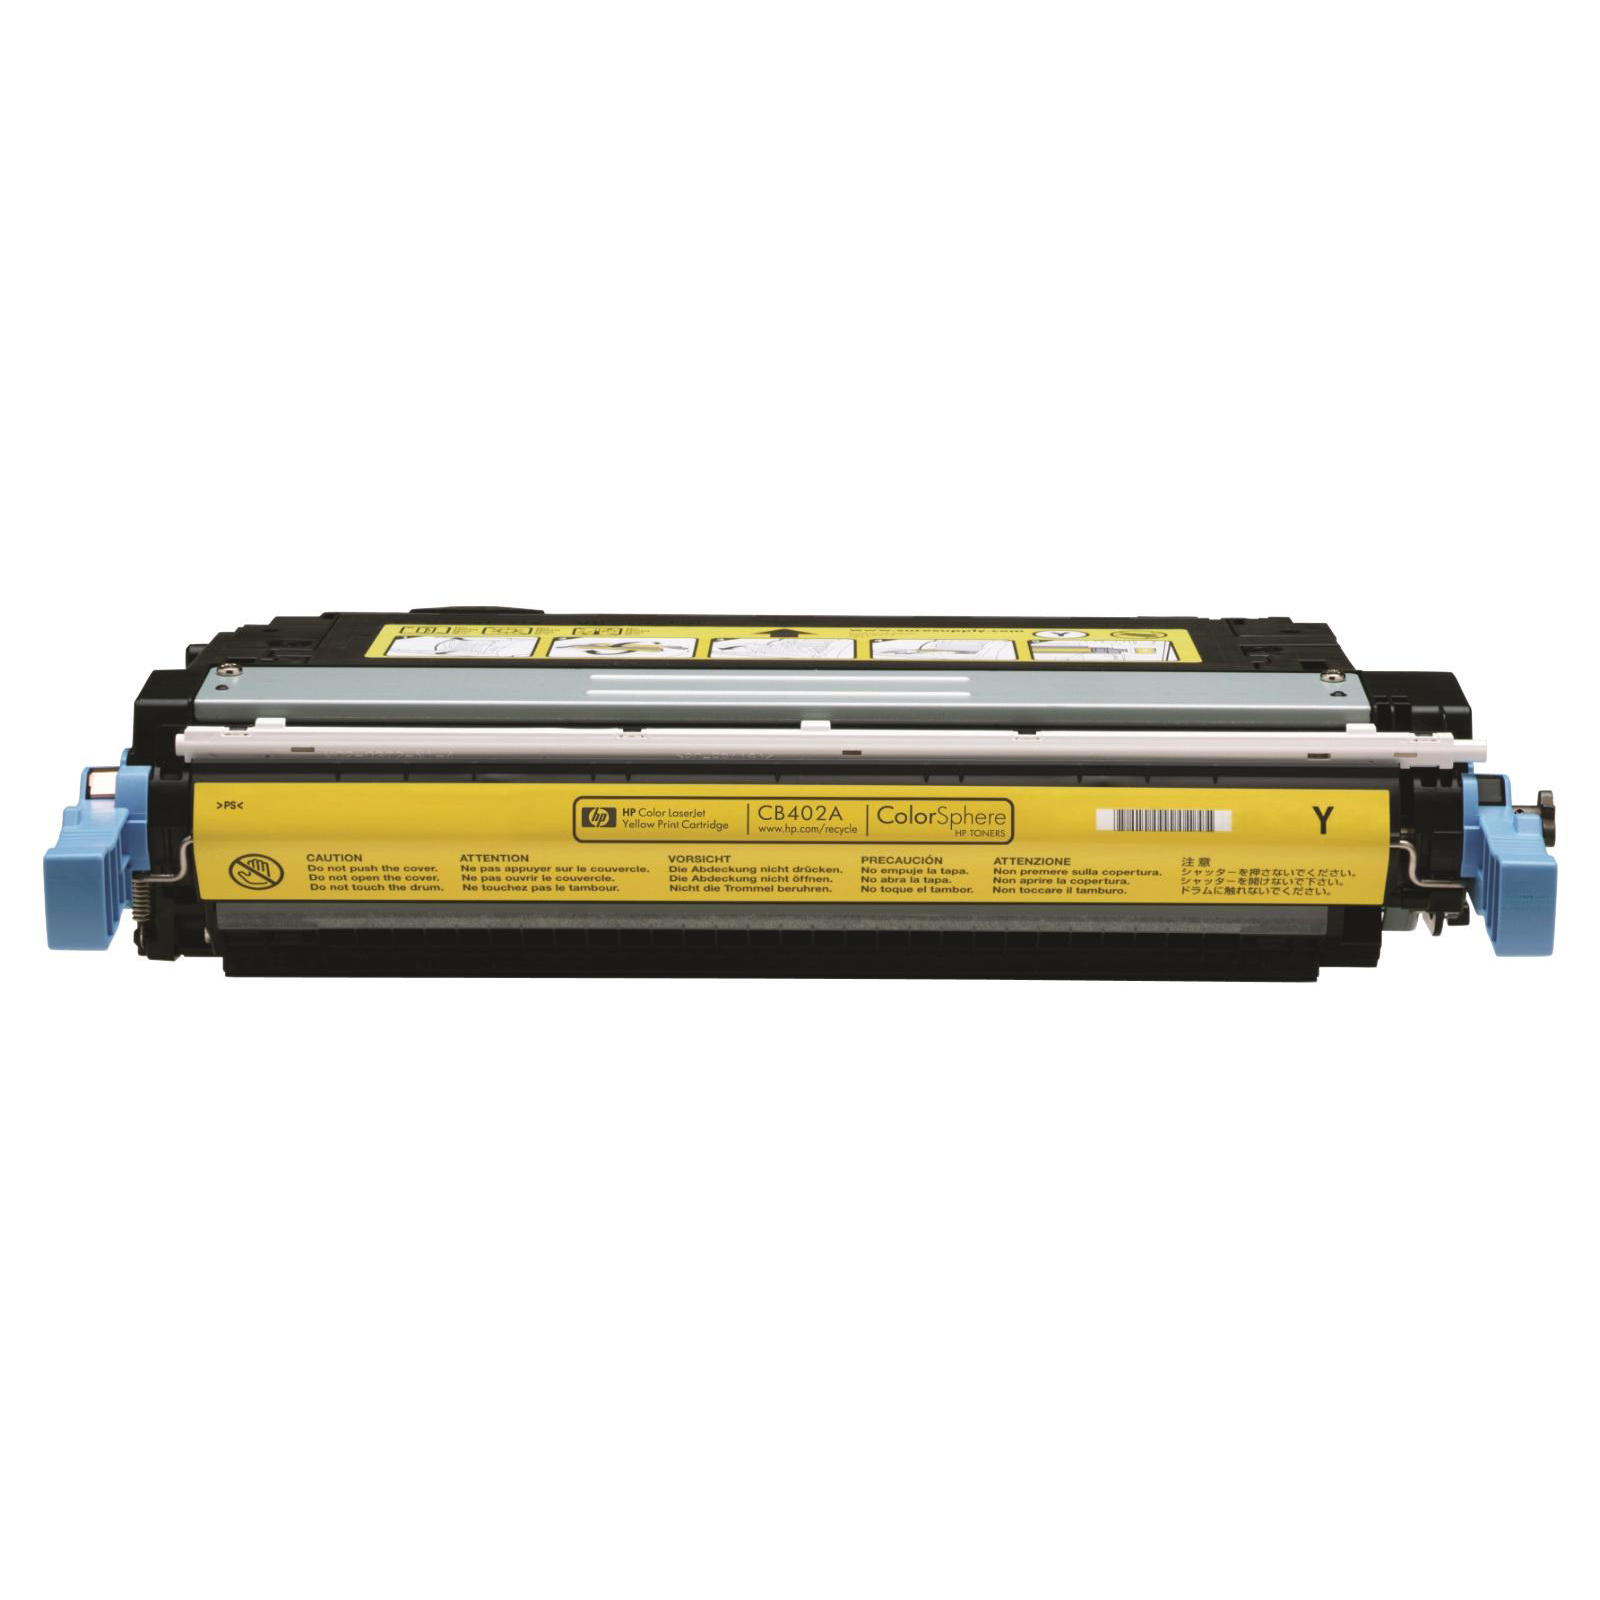 HP 642A Laser Toner Cartridge Page Life 7500pp Yellow Ref CB402A